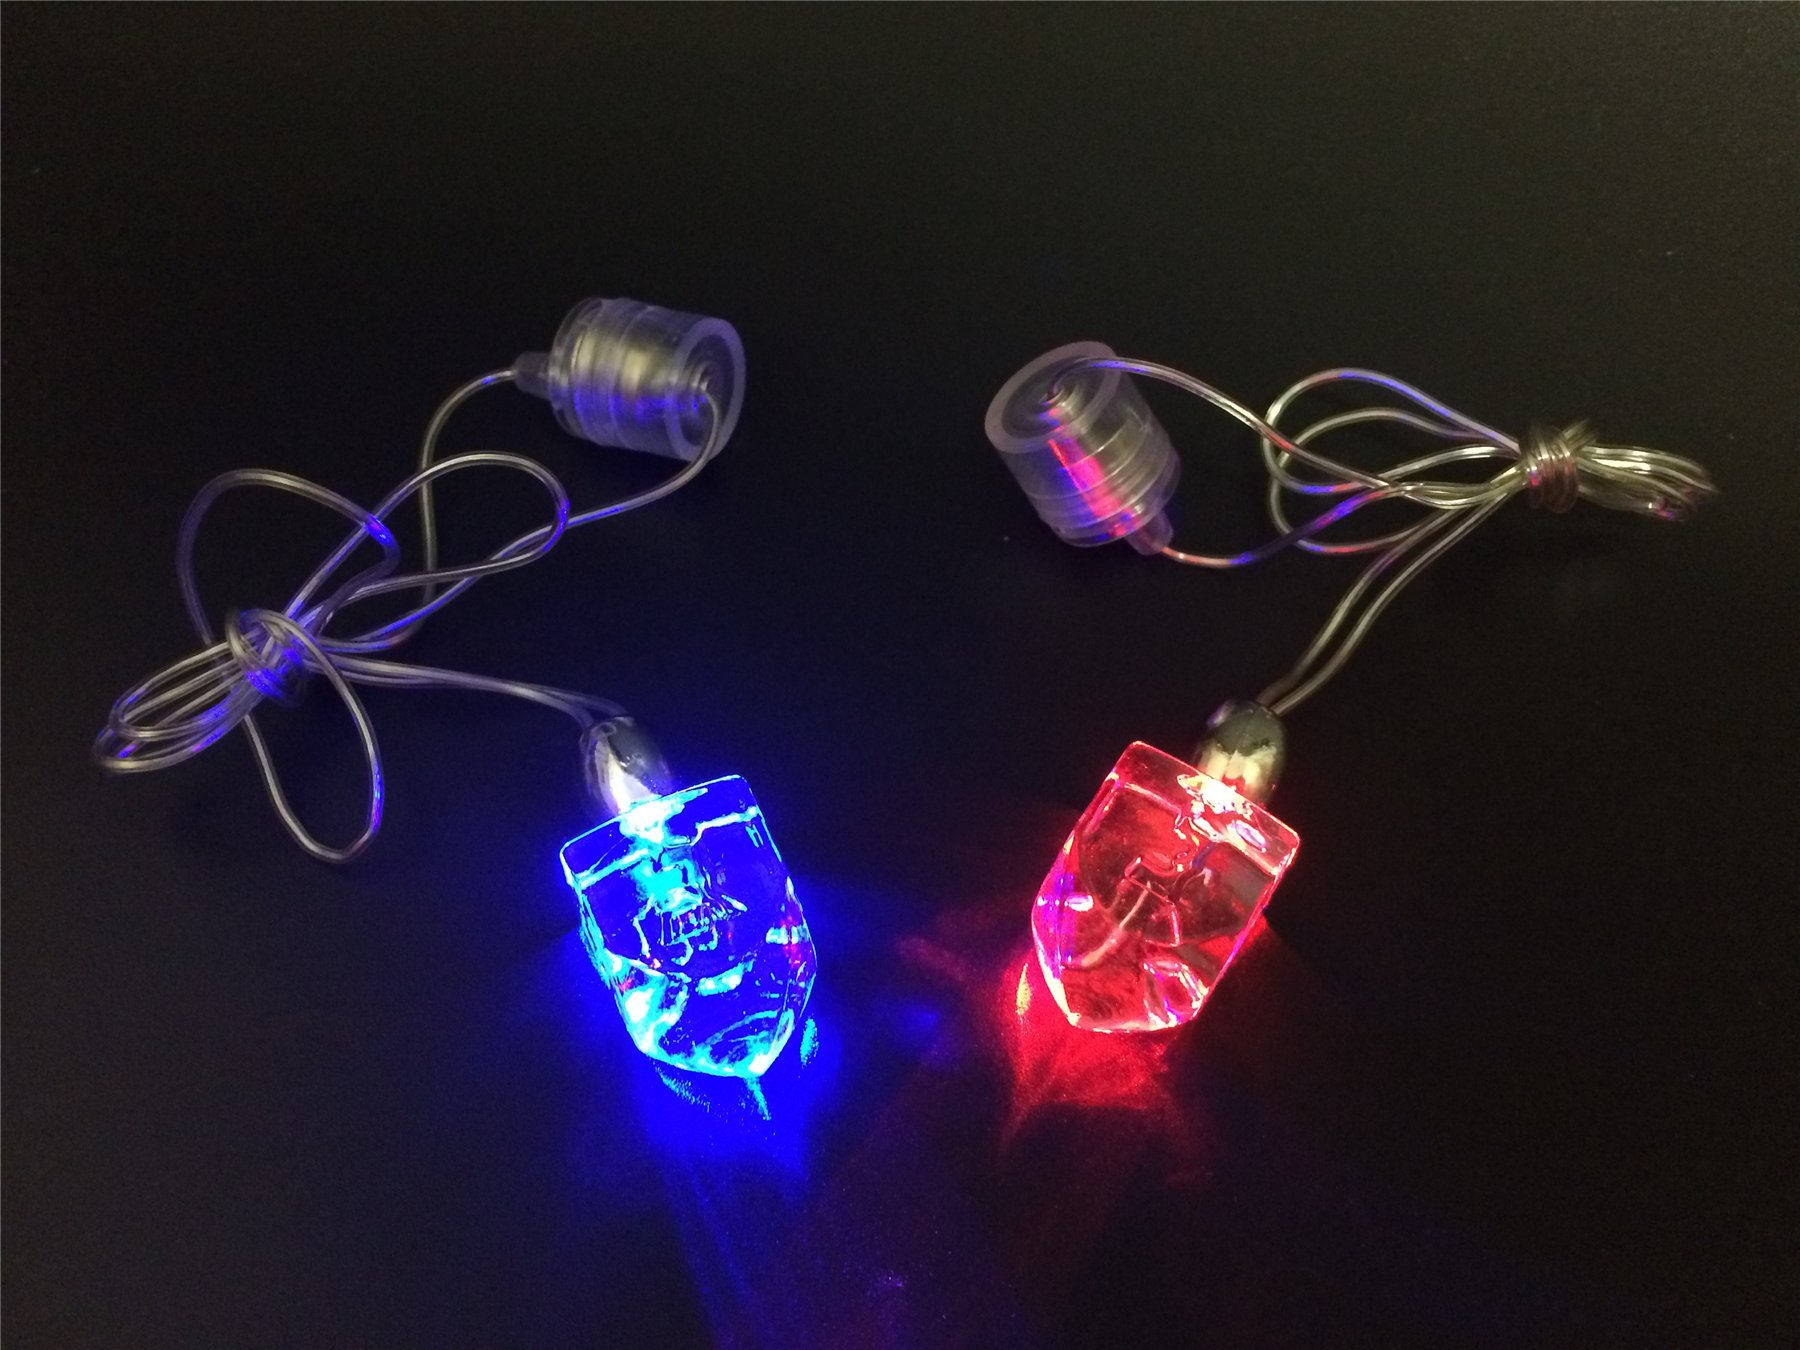 50 Hanukkah Glow in the Dark LED Dreidel Necklace & Light Up Decoration for Chanukah Party by JewishInnovations.com